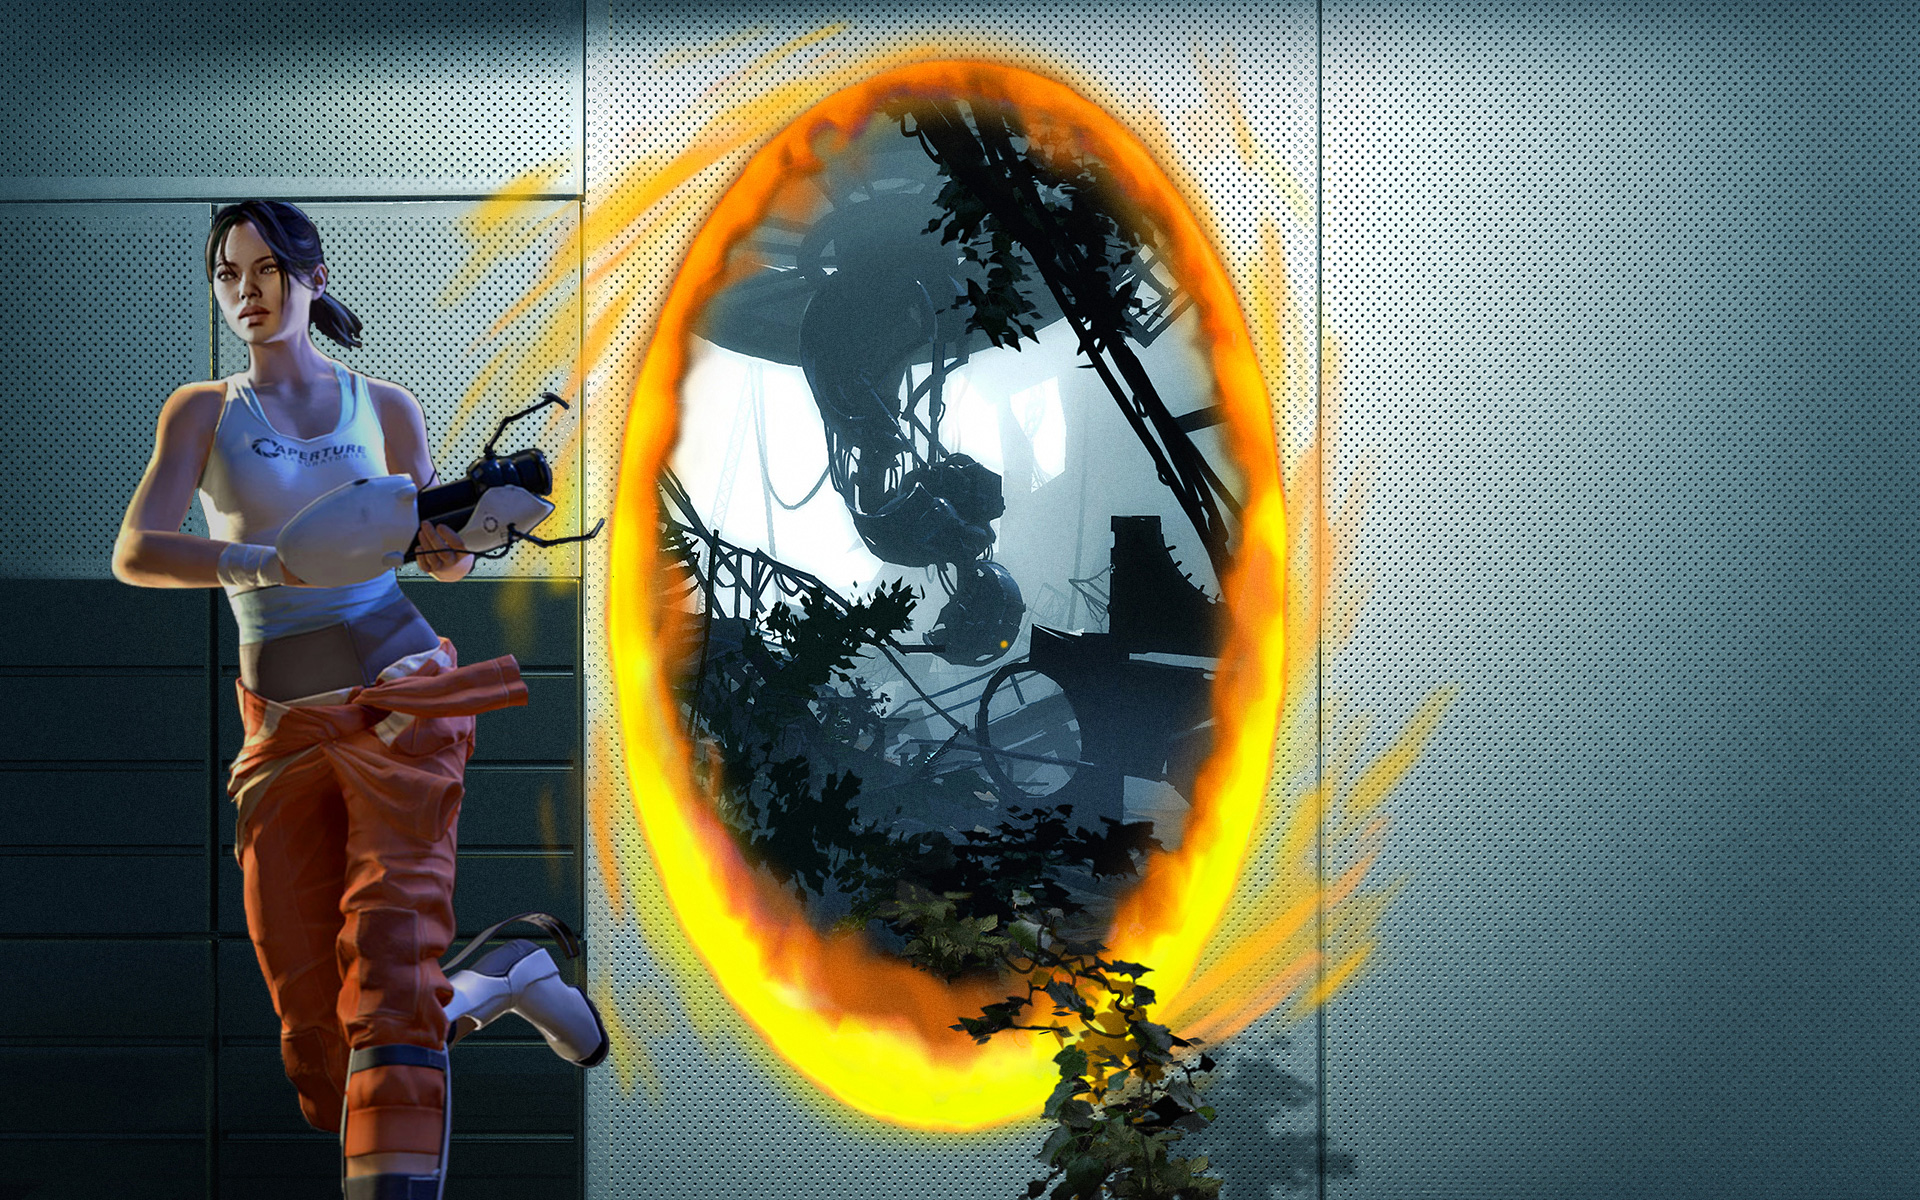 Portal 2 Wallpapers in HD High Resolution 1920x1200